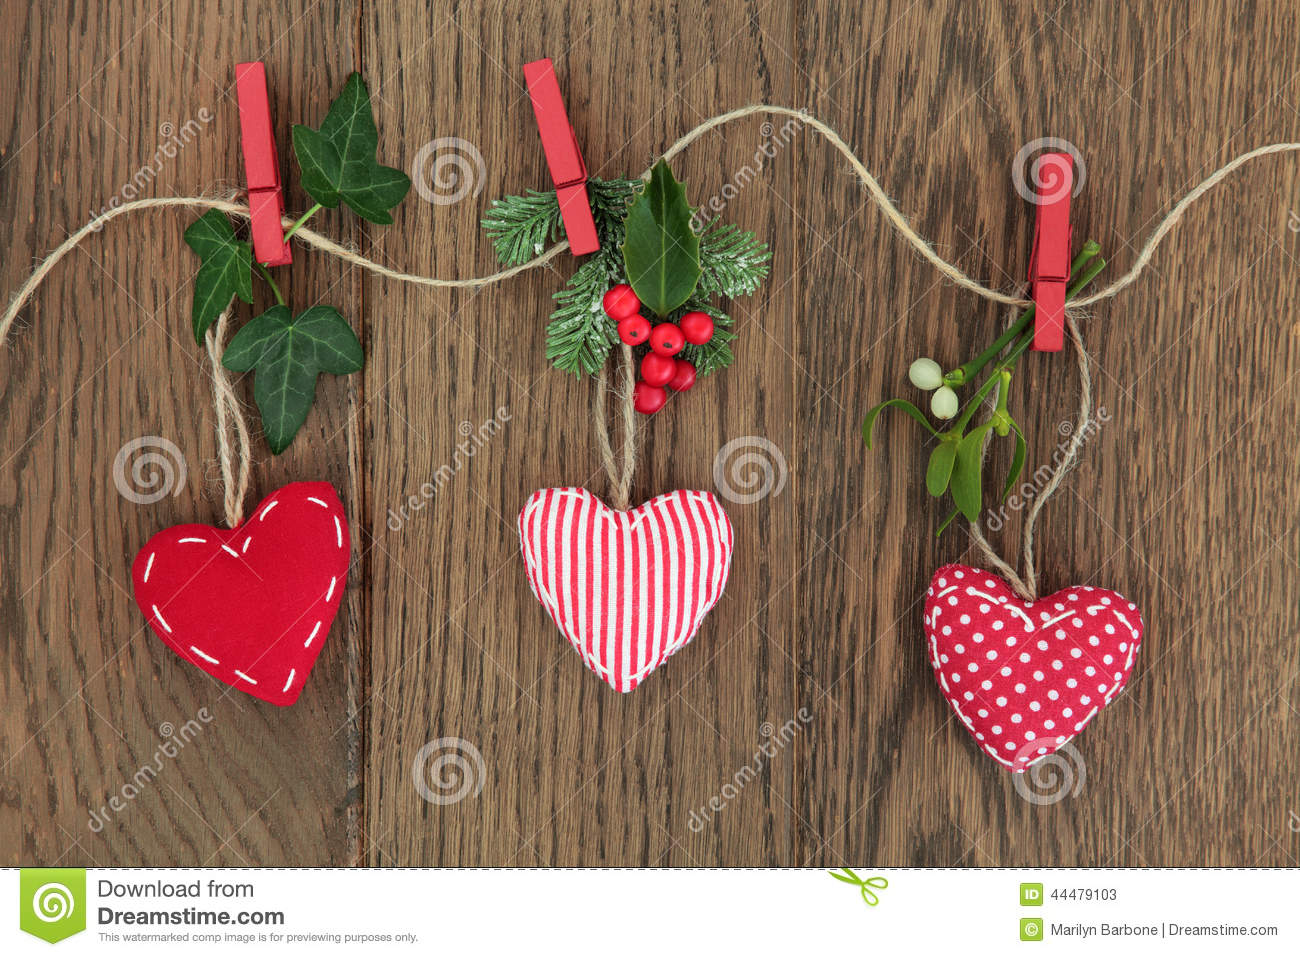 Christmas Heart Decoration.Christmas Heart Decorations Stock Image Image Of Green